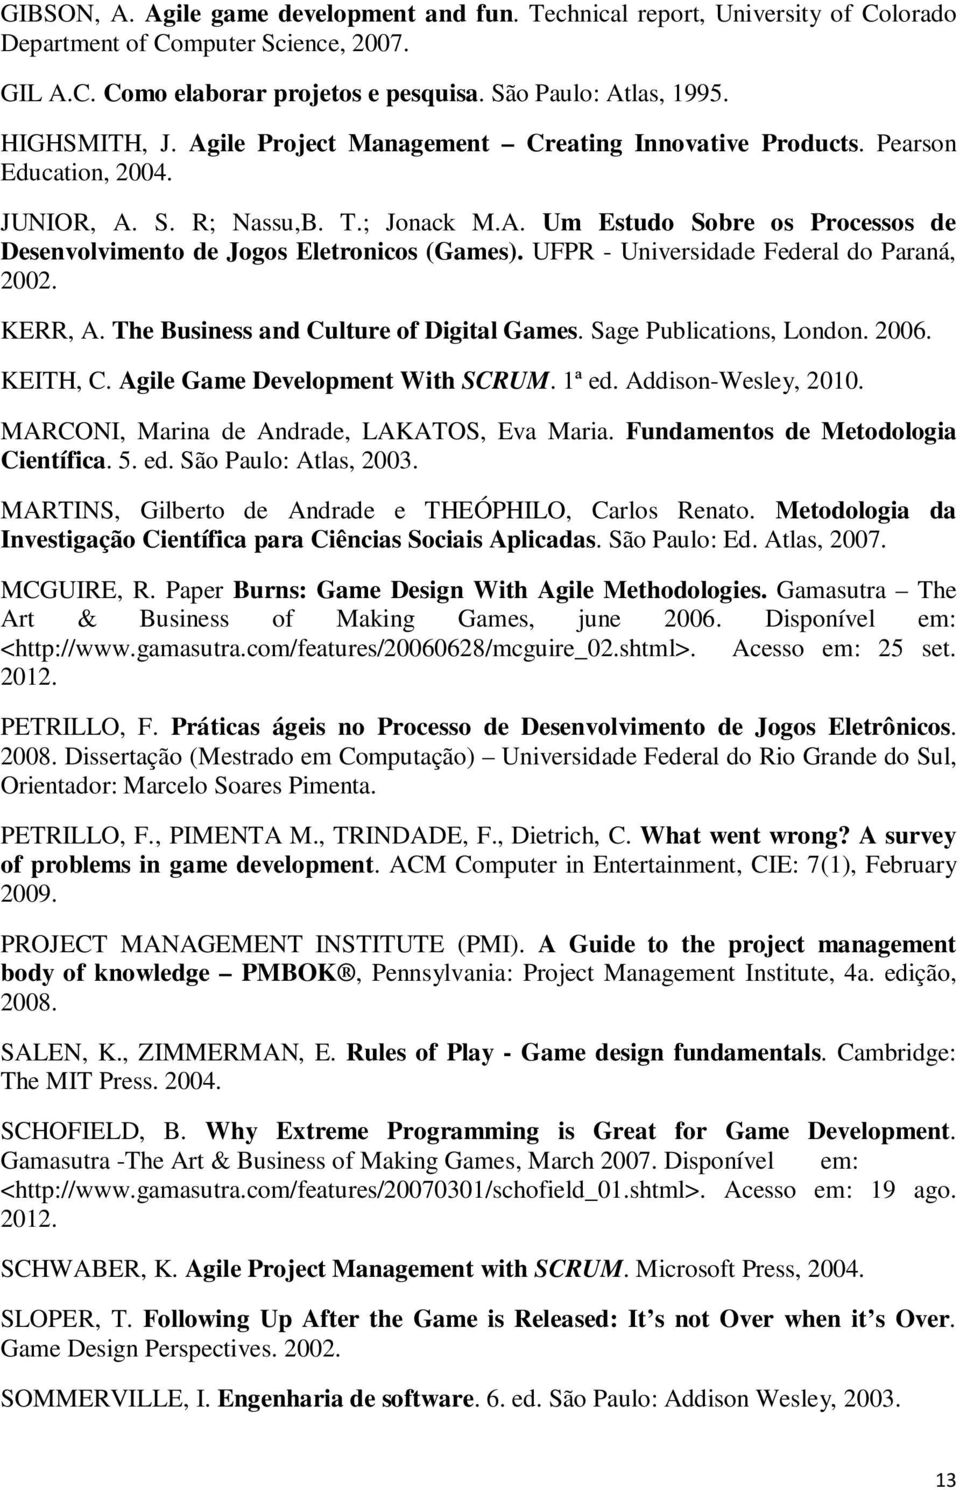 UFPR - Universidade Federal do Paraná, 2002. KERR, A. The Business and Culture of Digital Games. Sage Publications, London. 2006. KEITH, C. Agile Game Development With SCRUM. 1ª ed.